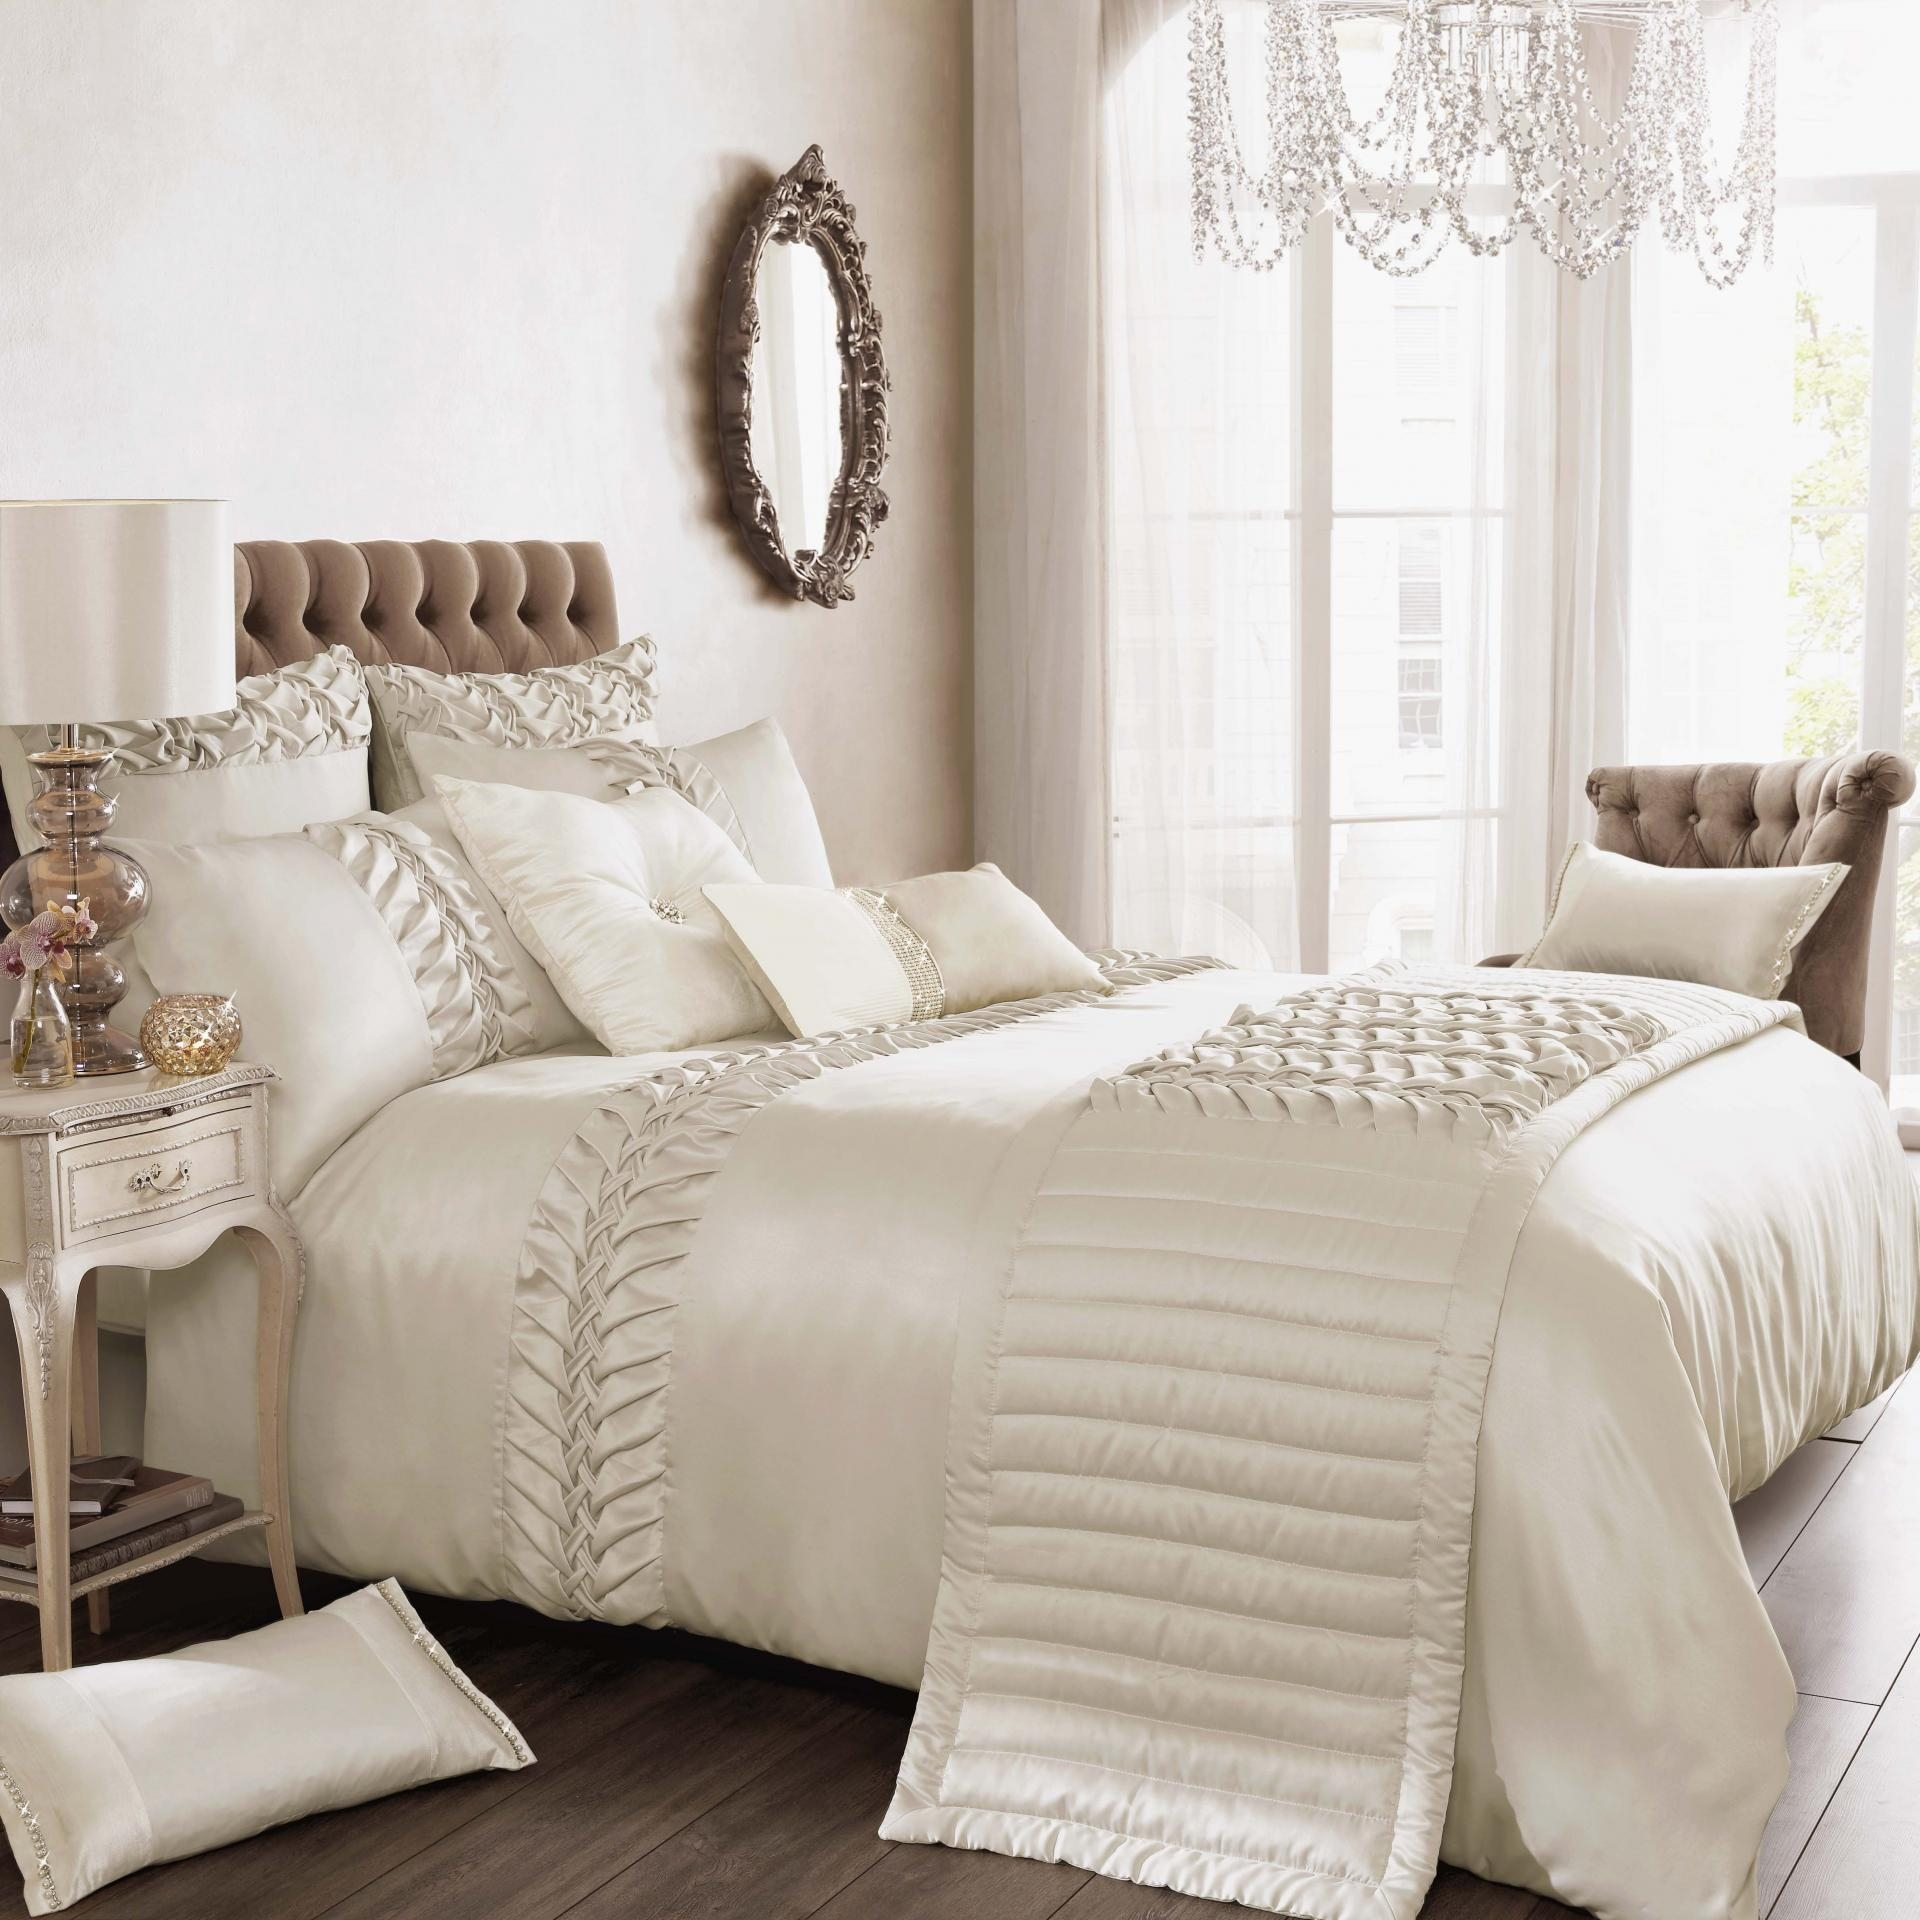 Luxury Hotel Comforter Sets | High End Luxury Comforter Sets | Luxury Comforter Sets